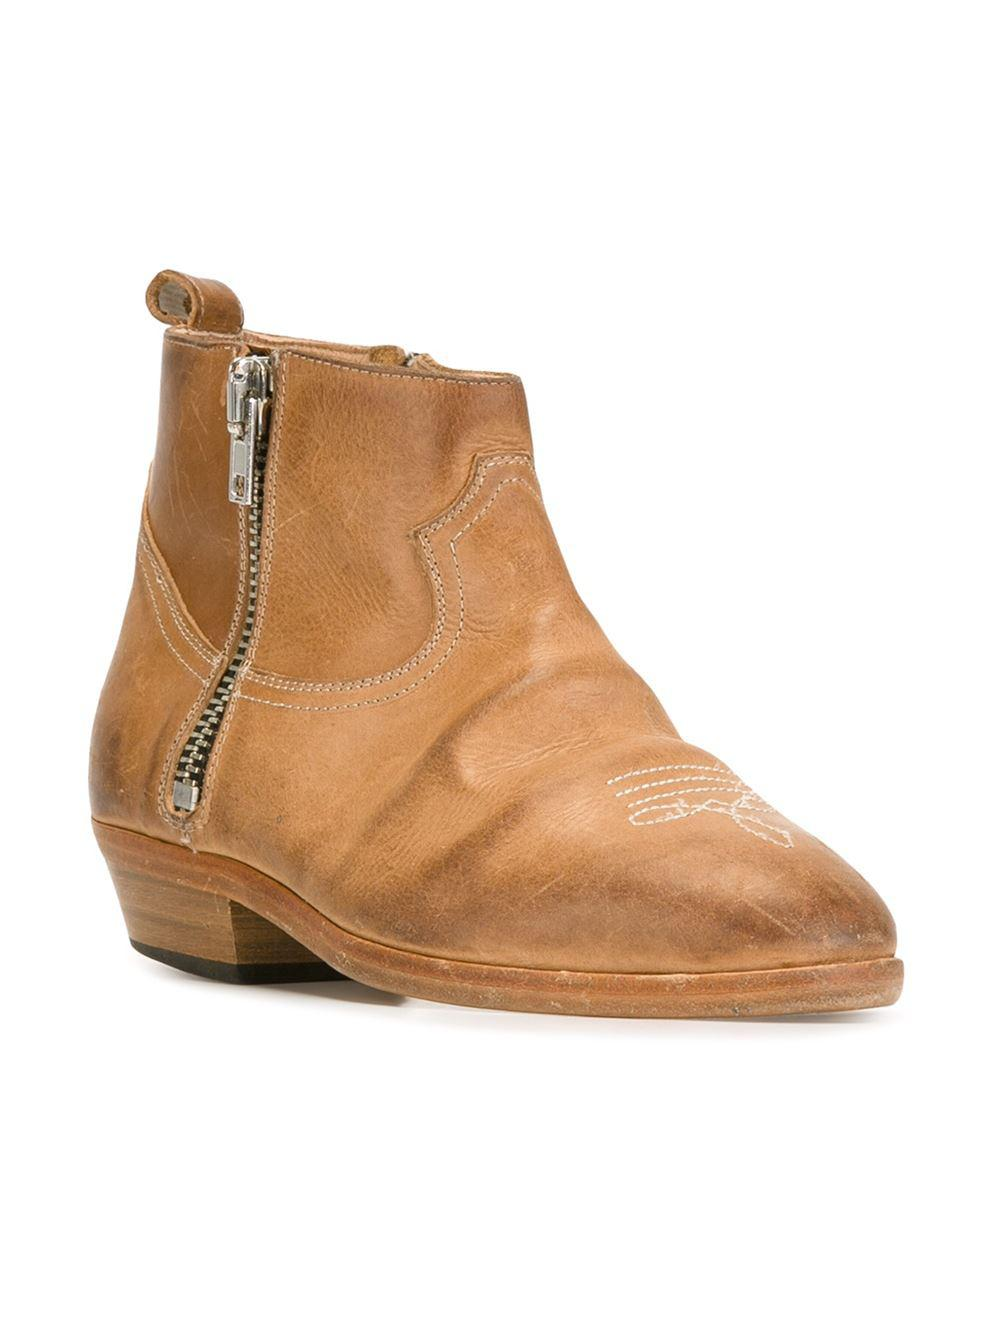 Golden Goose Deluxe Brand Leather 'viand' Boots in Natural